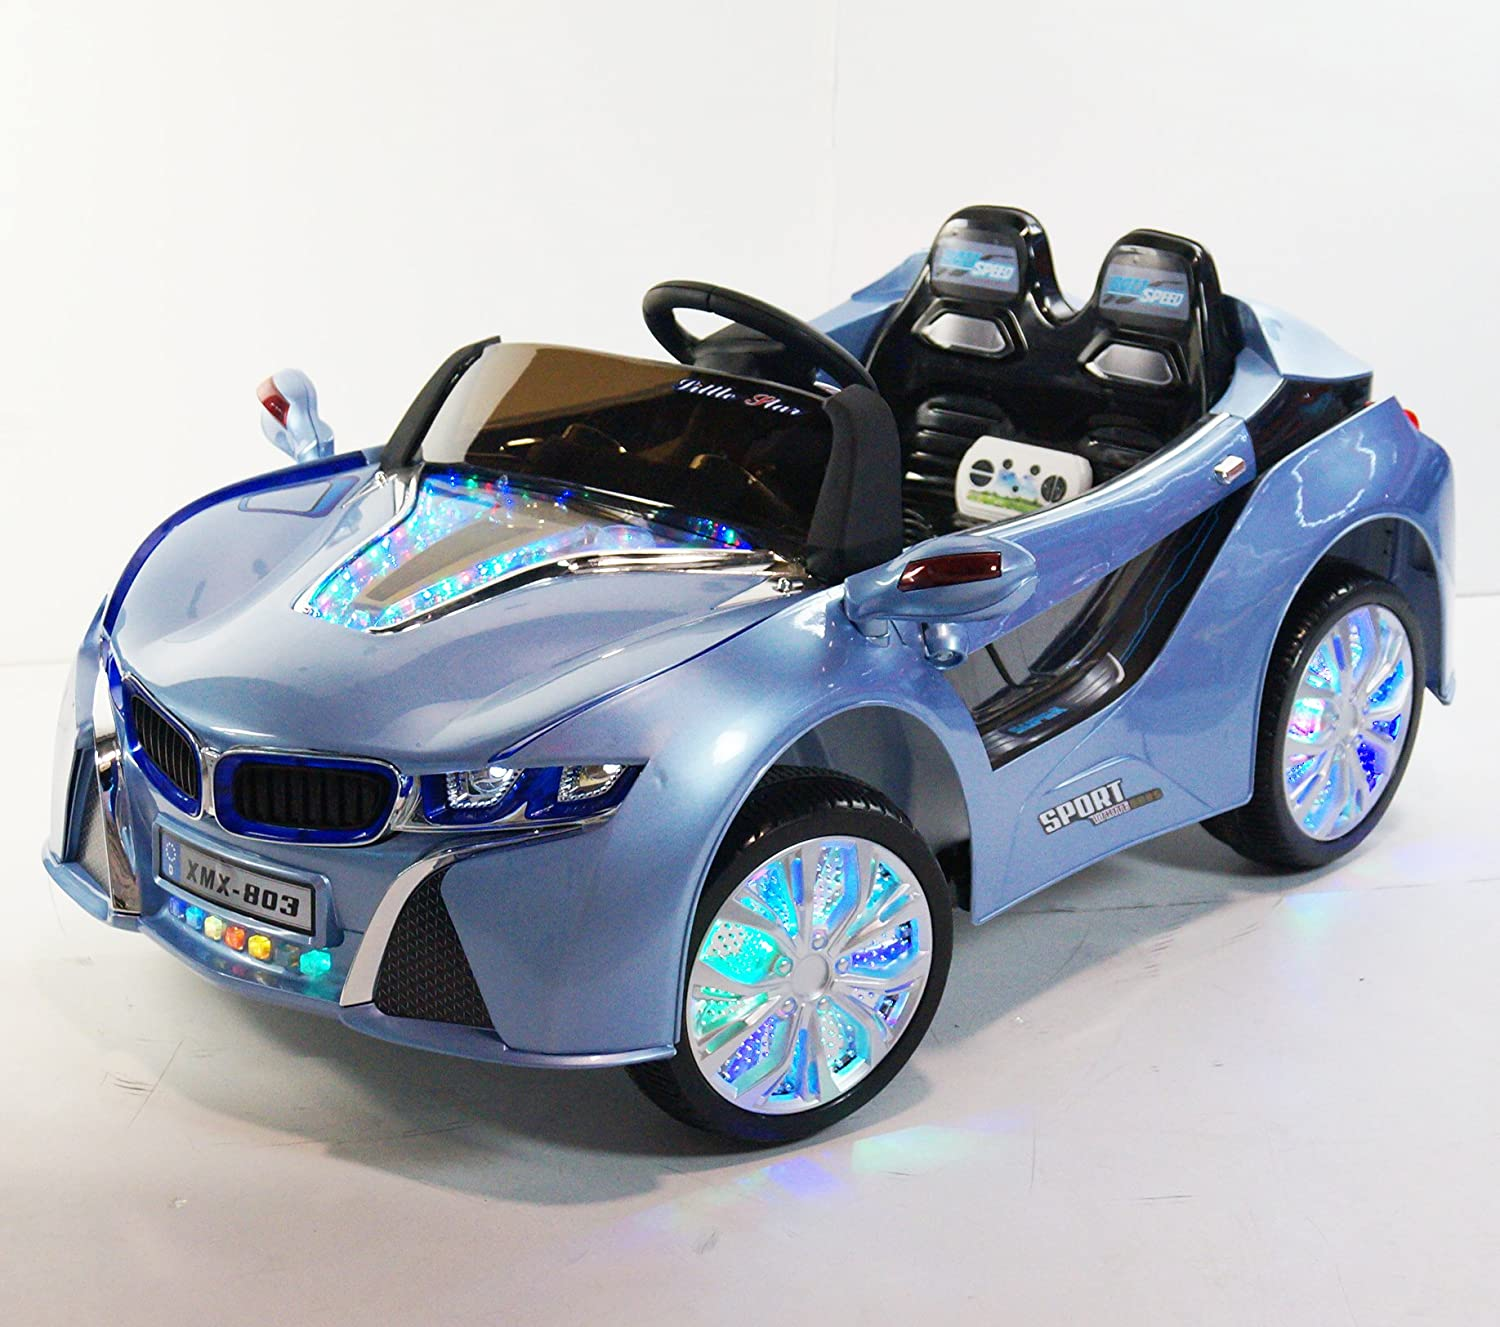 Bmw I8 12v Electric Ride On With Remote Control: BMW I8 Style XMX803 Blue 12V With Remote Control Ride-on